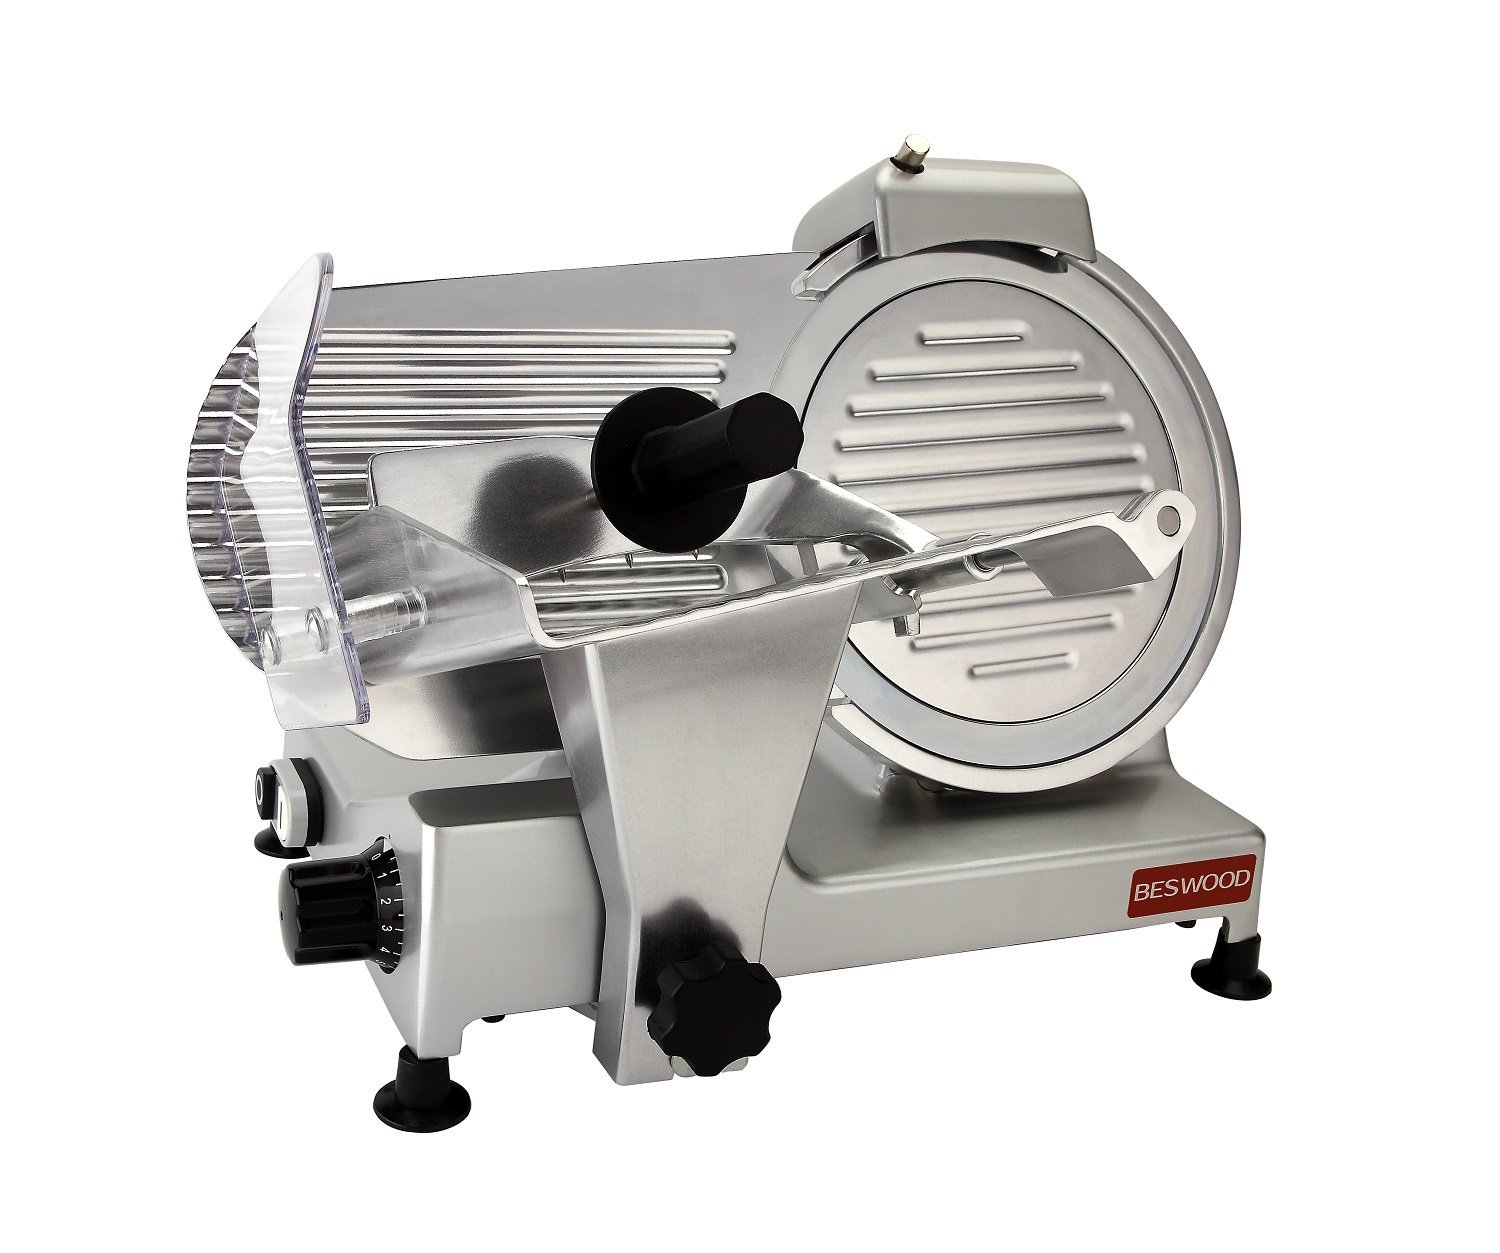 Best Meat Slicer Reviews 2019: Top 5+ Recommended 3 #cookymom